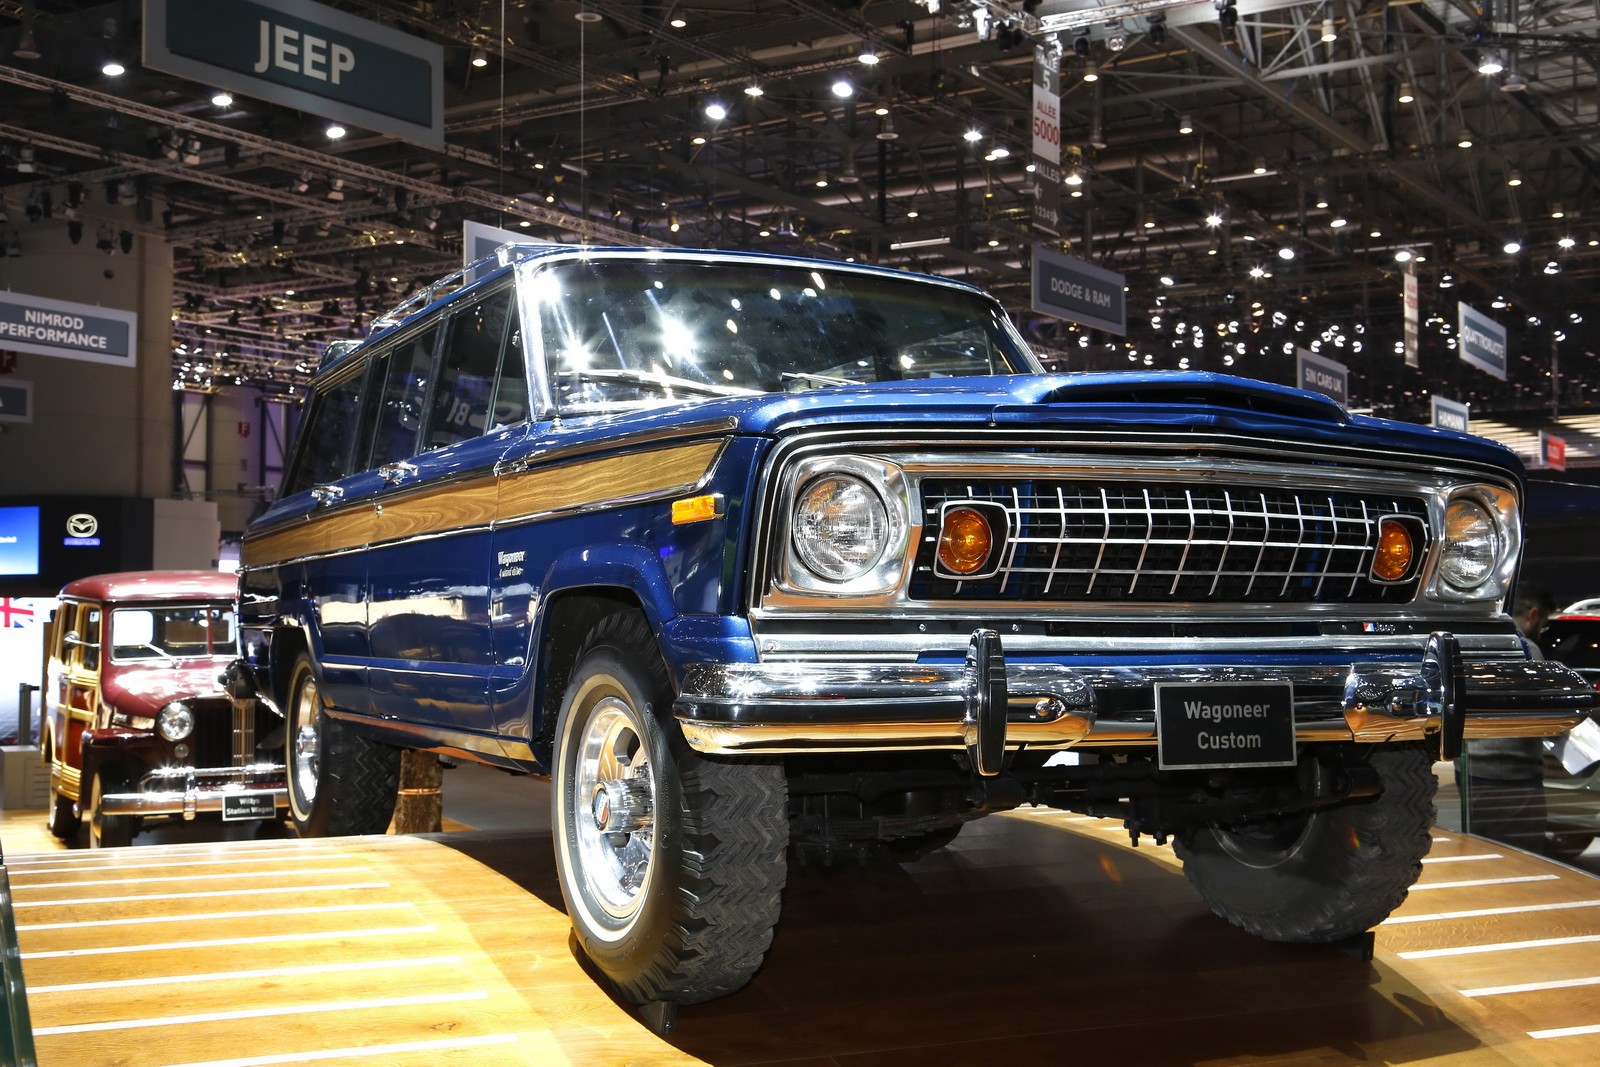 Old Porsche For Sale >> Classic Jeep Wagoneer Could Be Geneva's Coolest SUV